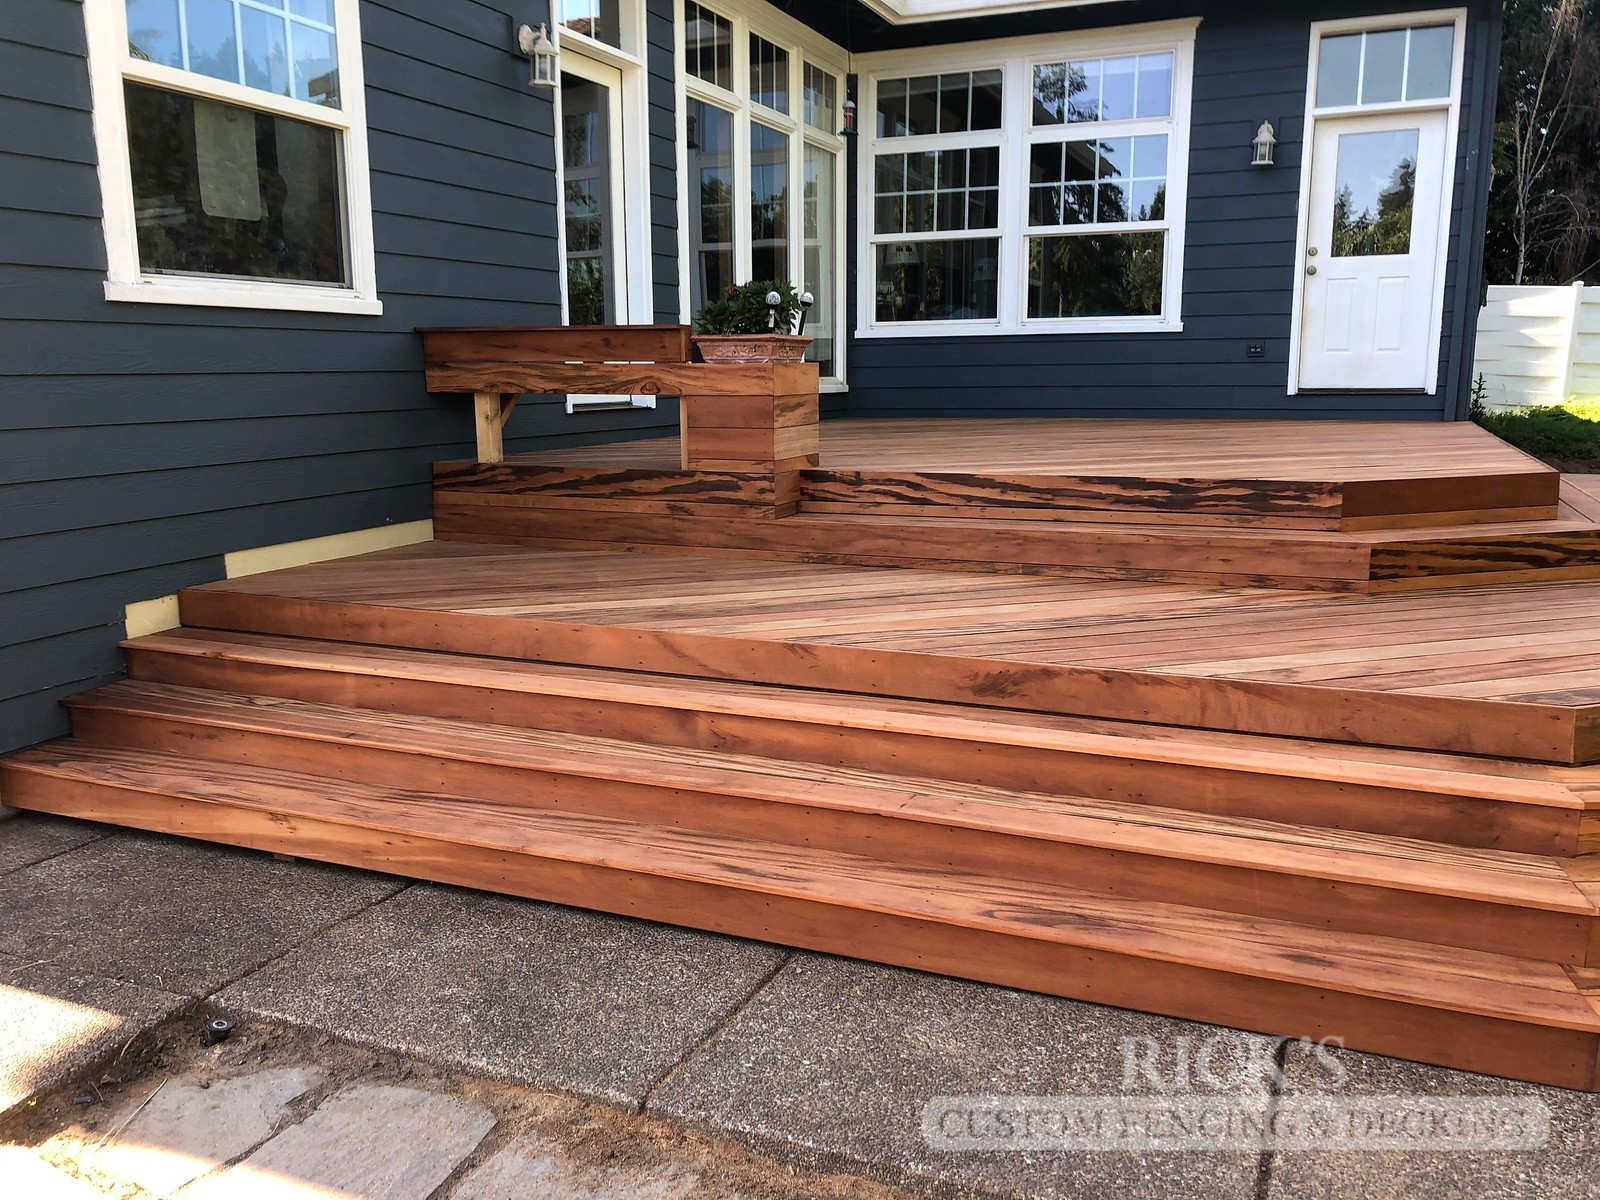 1132 - TigerWood Hardwood Decking